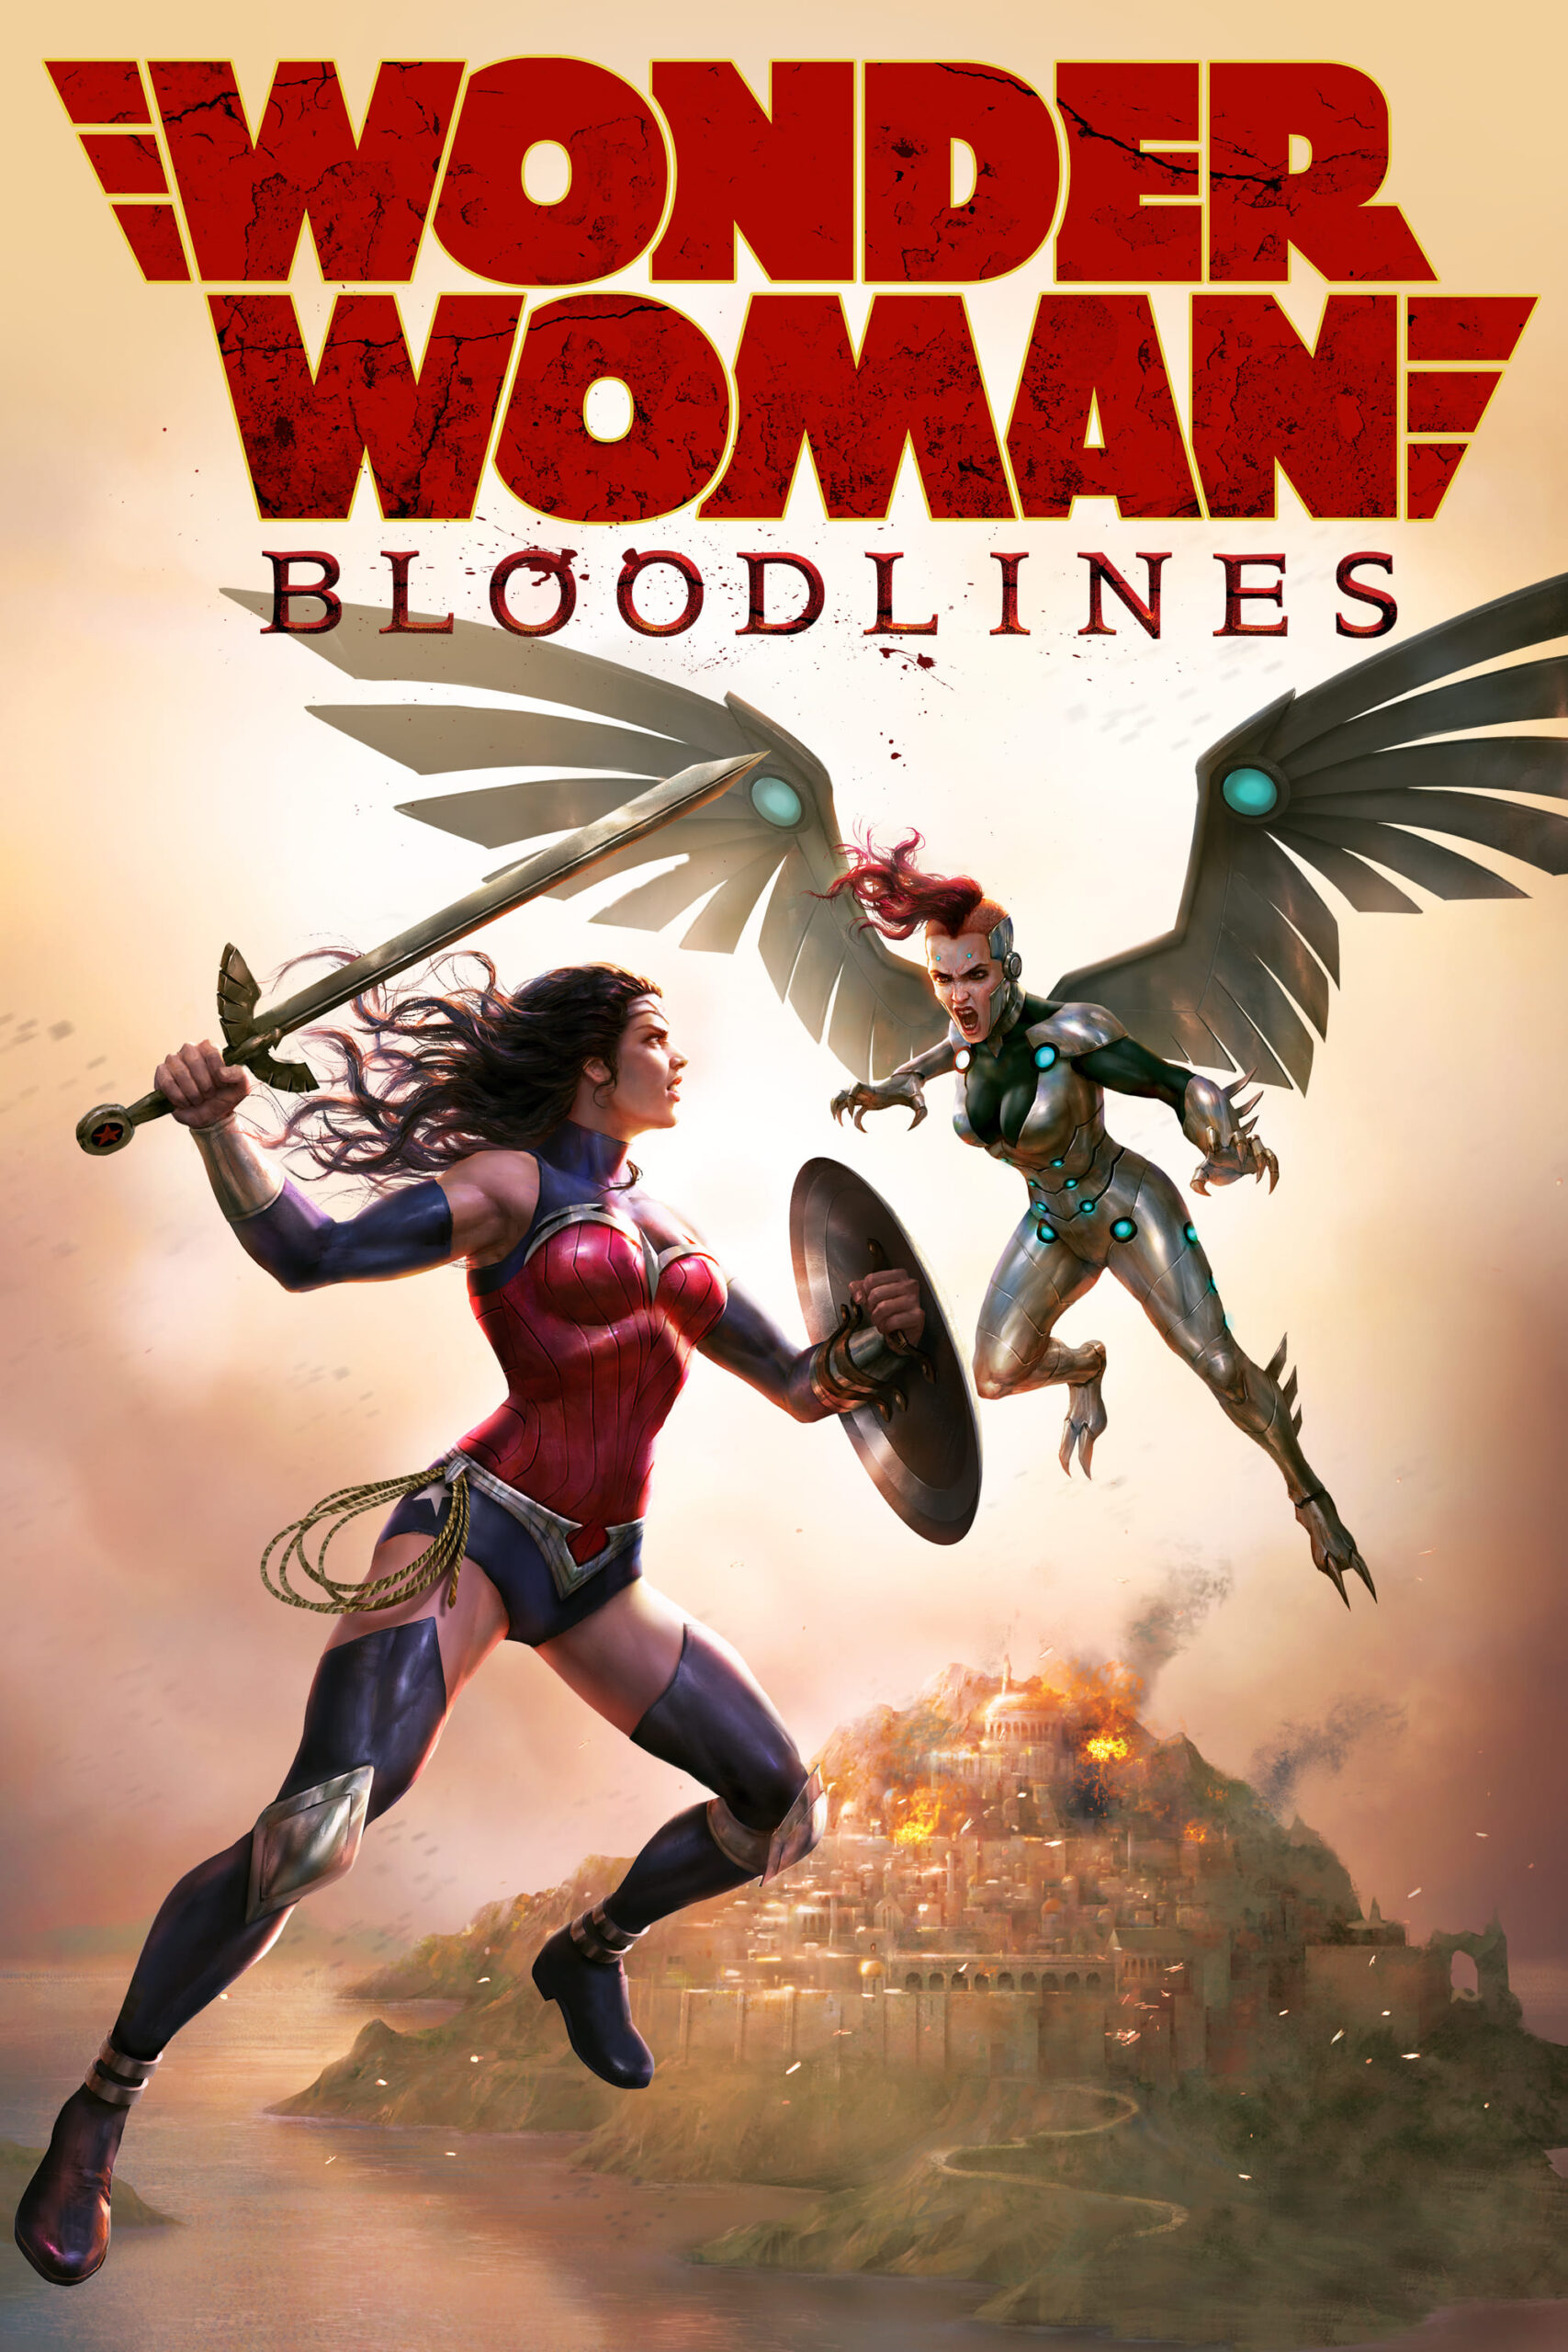 Wonder Woman Streaming Youtube : wonder, woman, streaming, youtube, Wonder, Woman:, Bloodlines, German,, Spanish, Movie, Streaming, Online, Watch, Amazon,, Google, Play,, Youtube